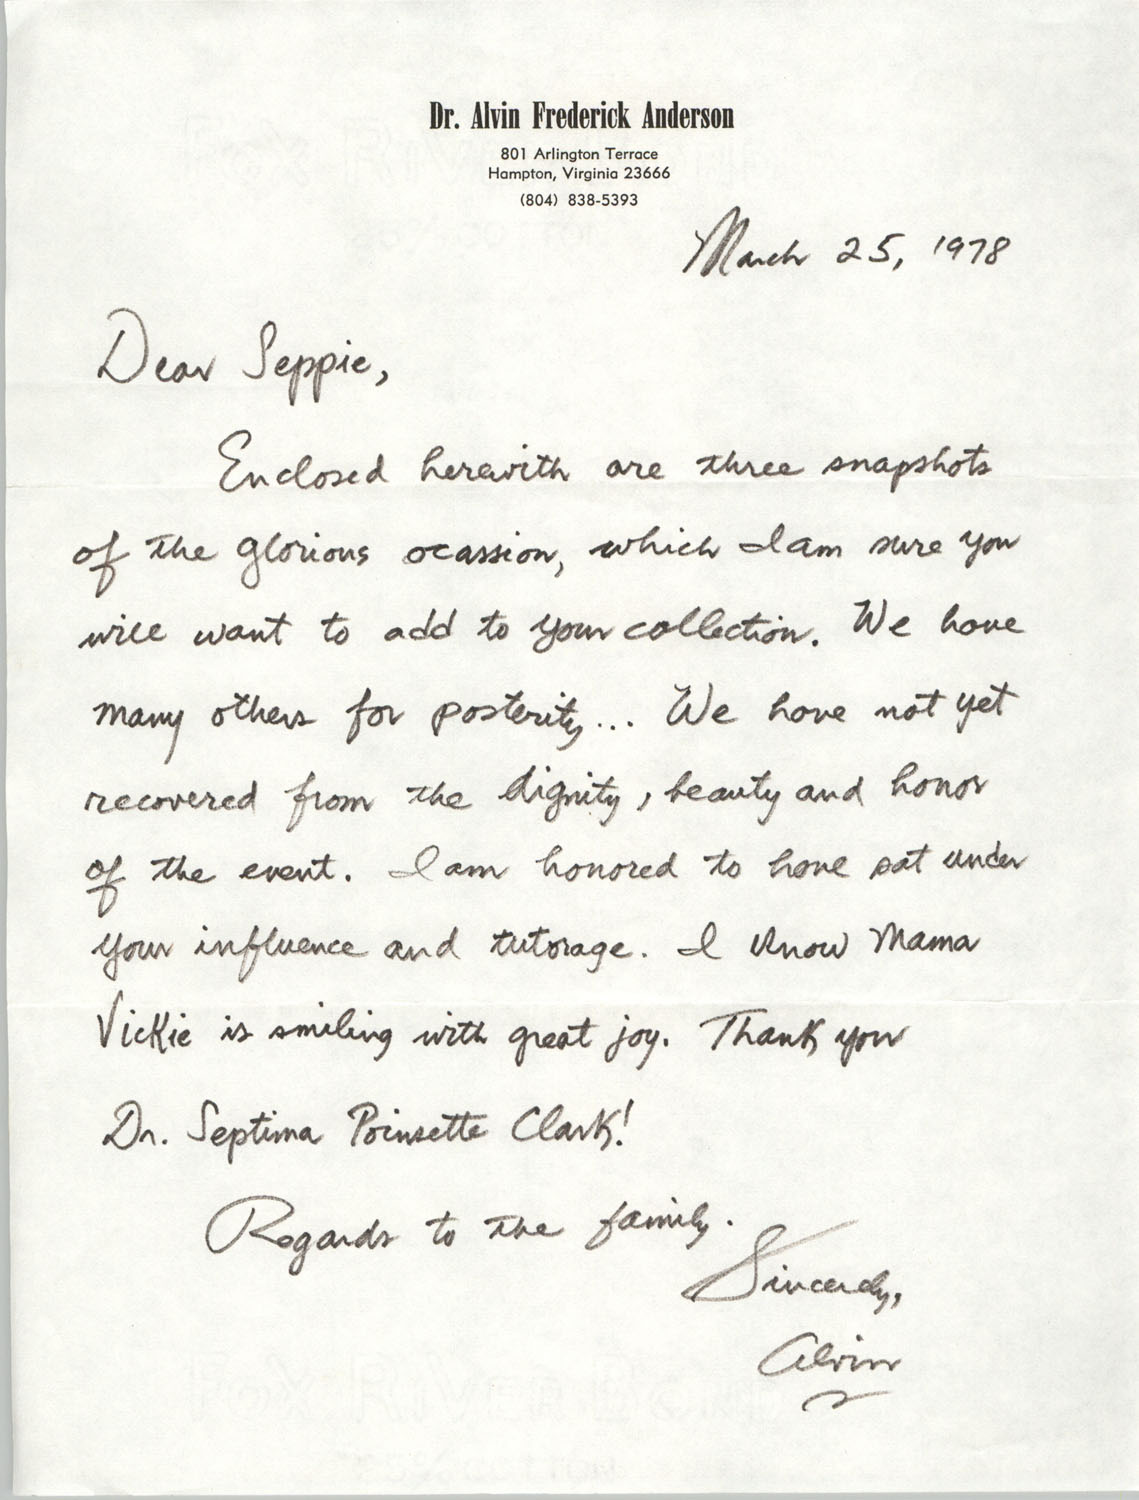 Letter from Alvin Frederick Anderson to Septima P. Clark, March 25, 1978